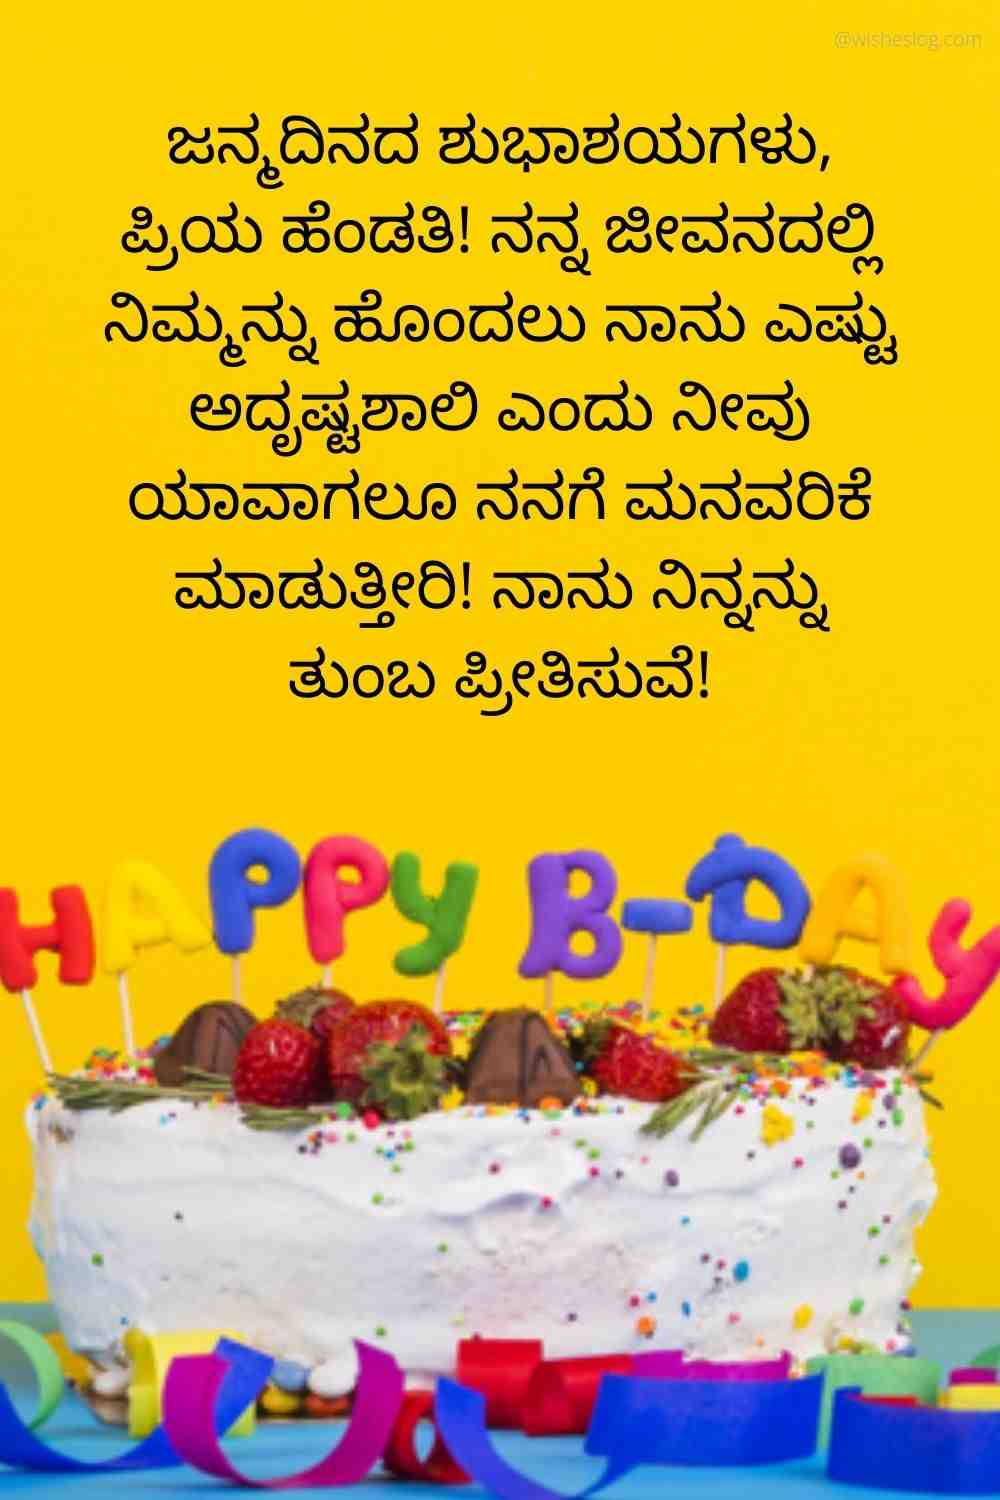 wife birthday quotes in kannada